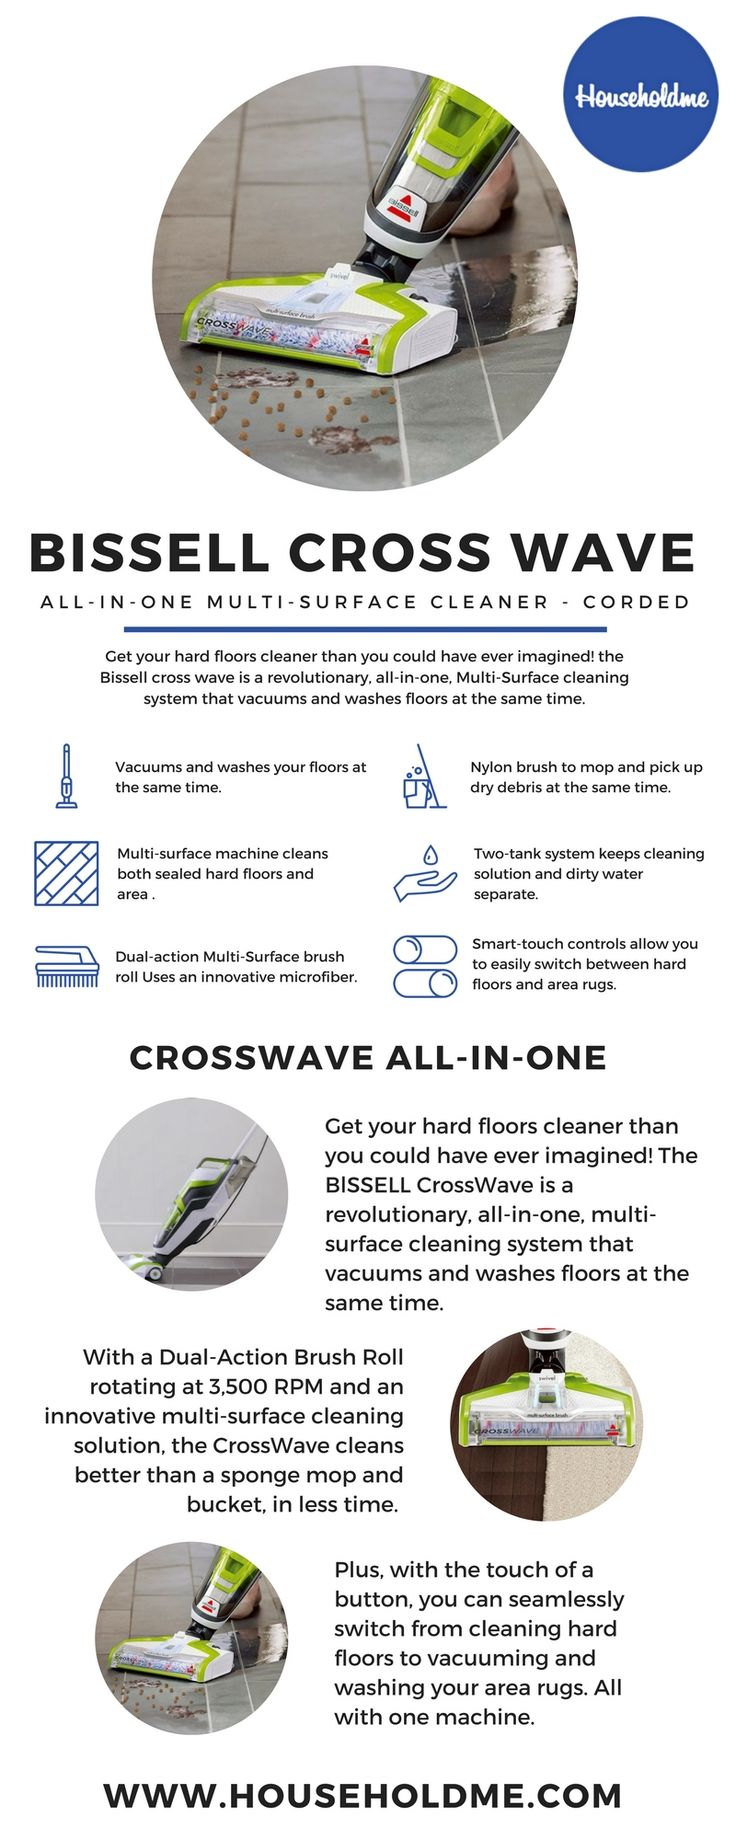 I love the Bissell CrossWave! It cleans my wood and tile floors plus my area rug. It doesn't take long at all to do my whole house!